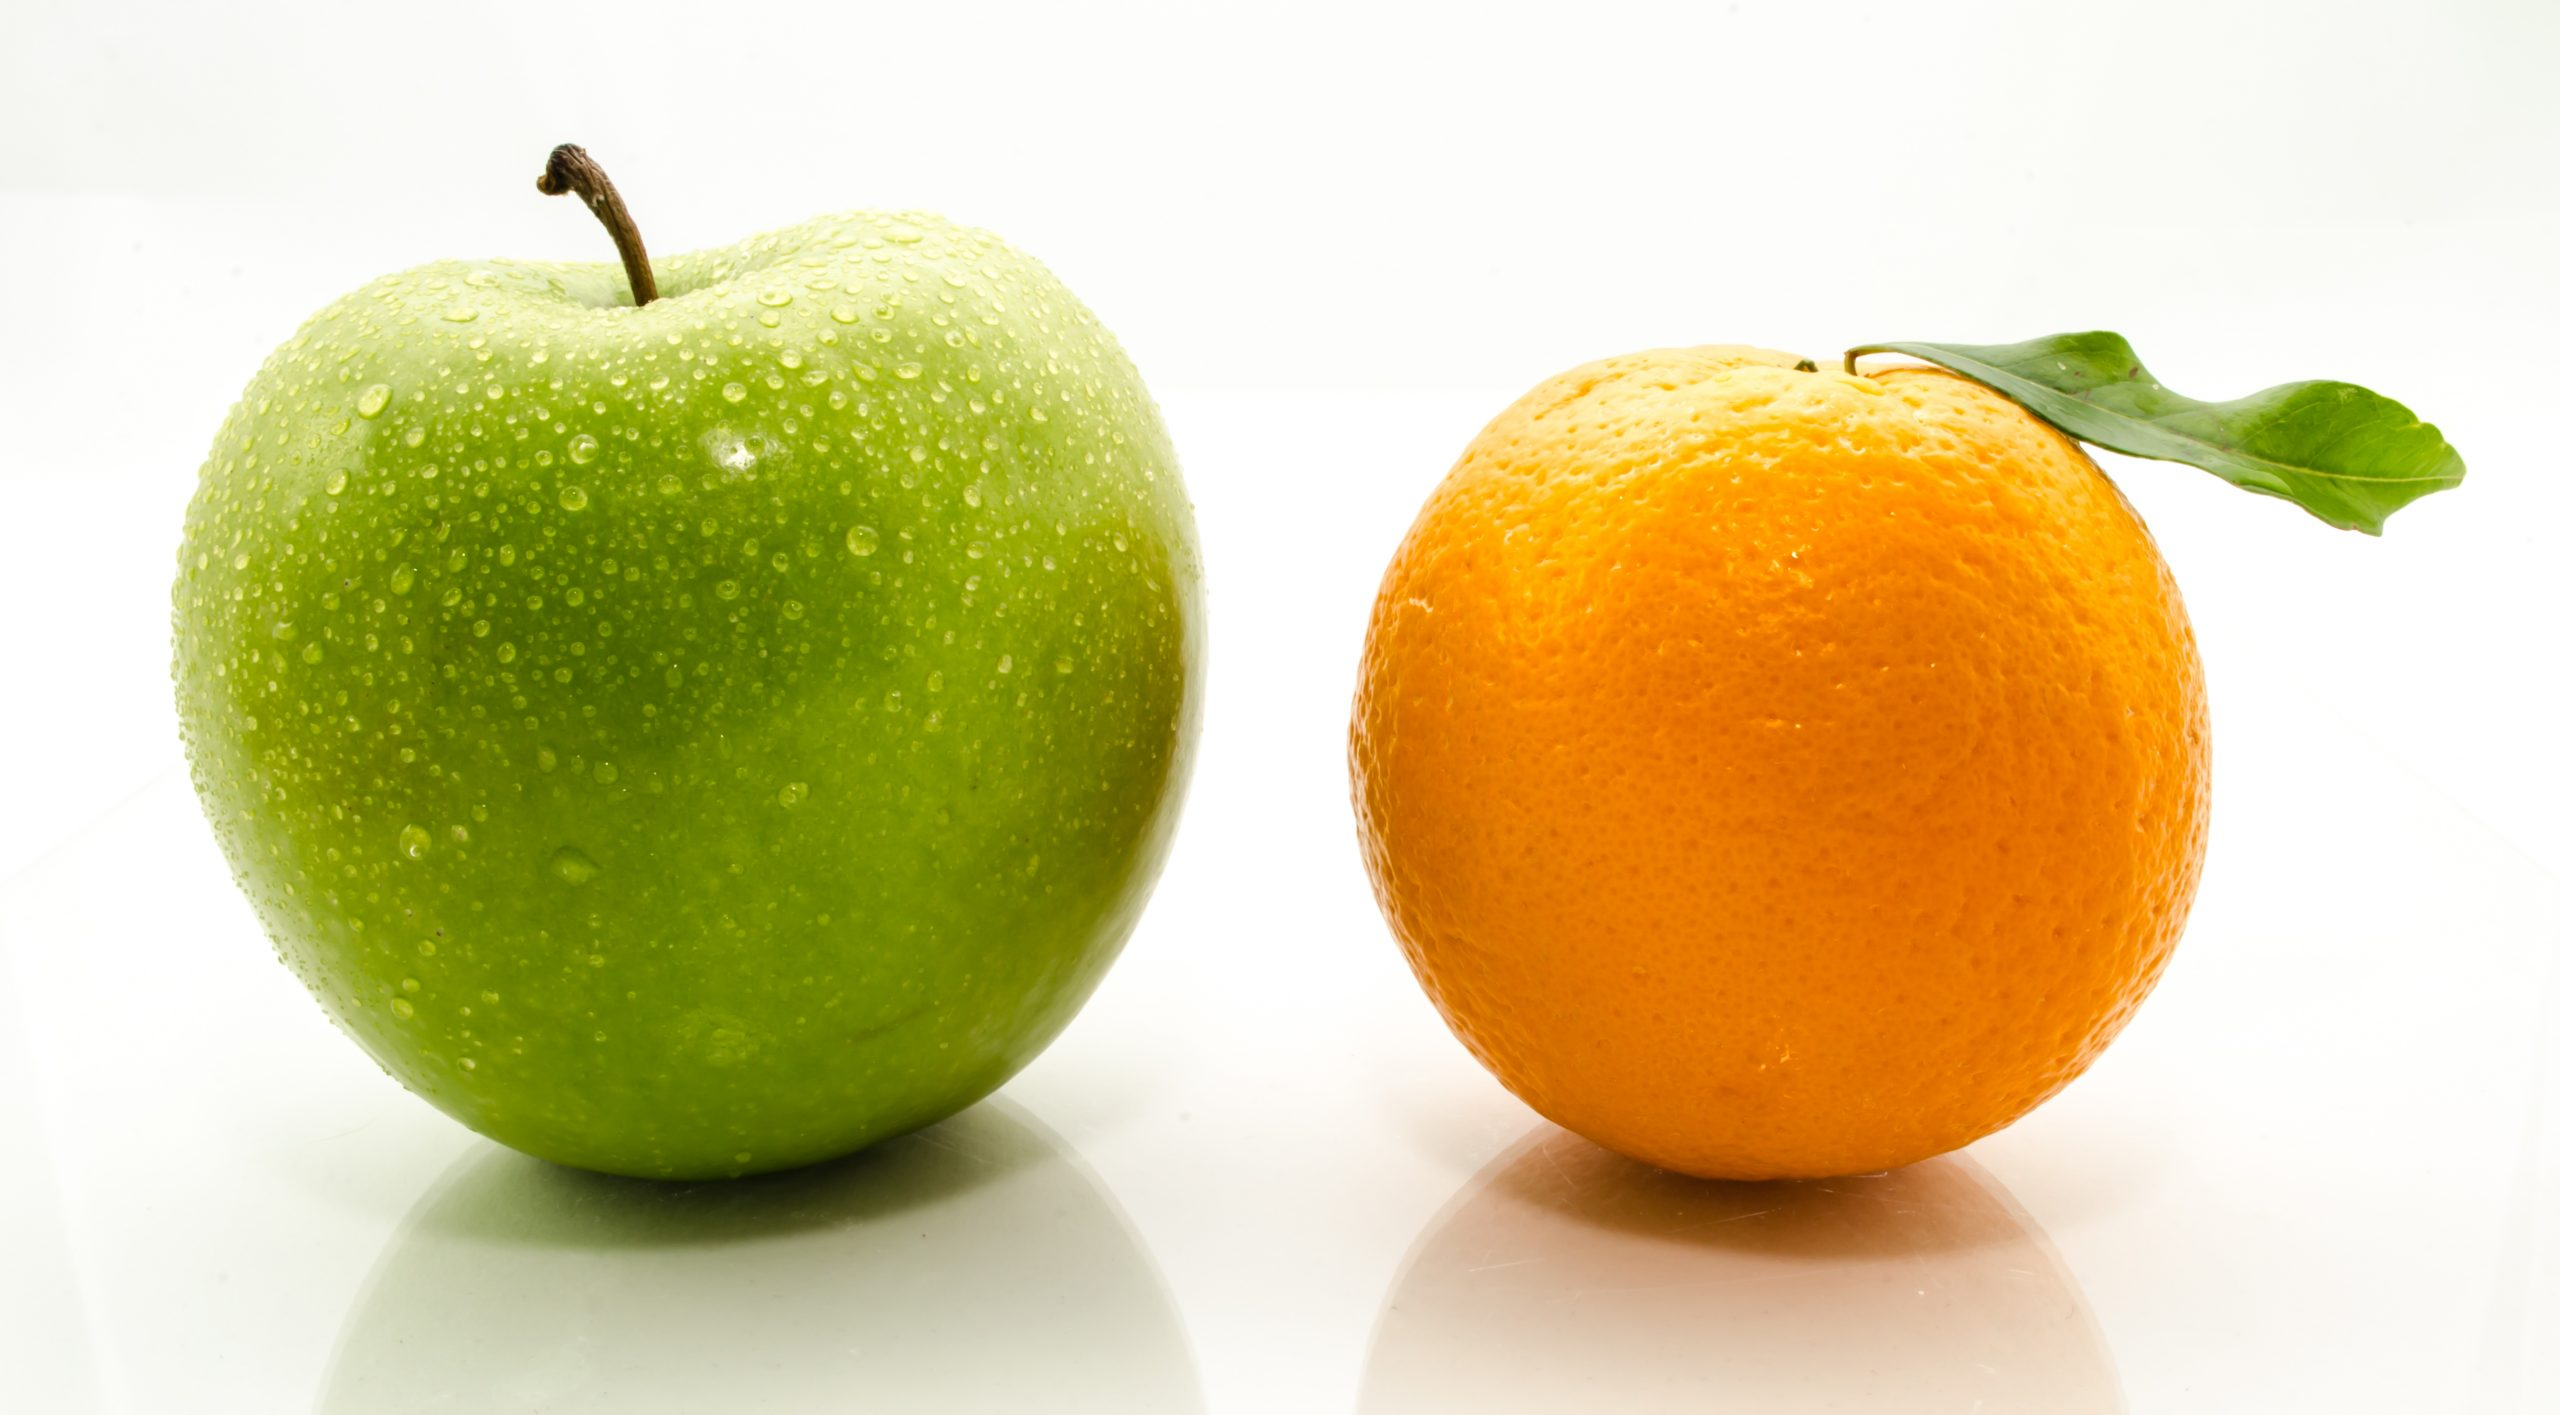 Some tips for engaging in healthy comparisons in your life